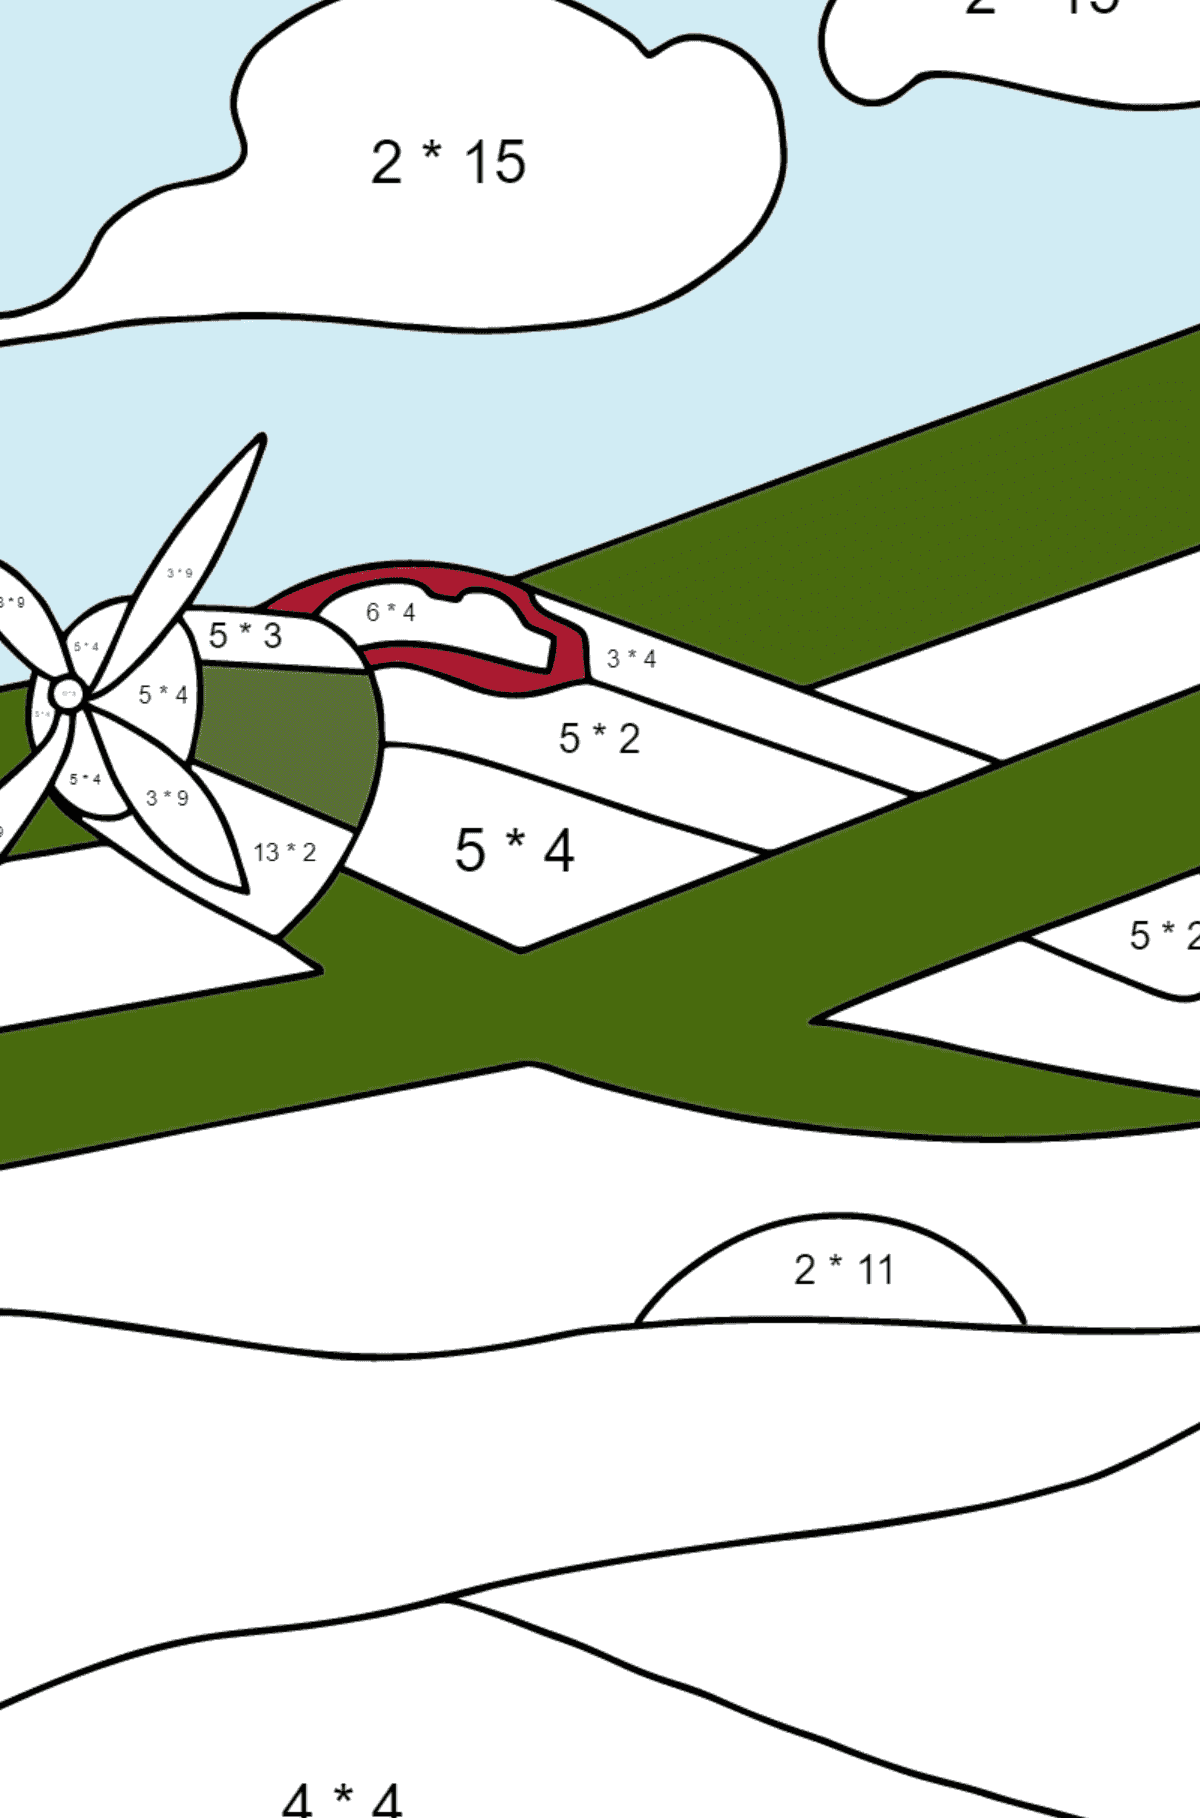 Coloring Page - A Biplane - Math Coloring - Multiplication for Kids